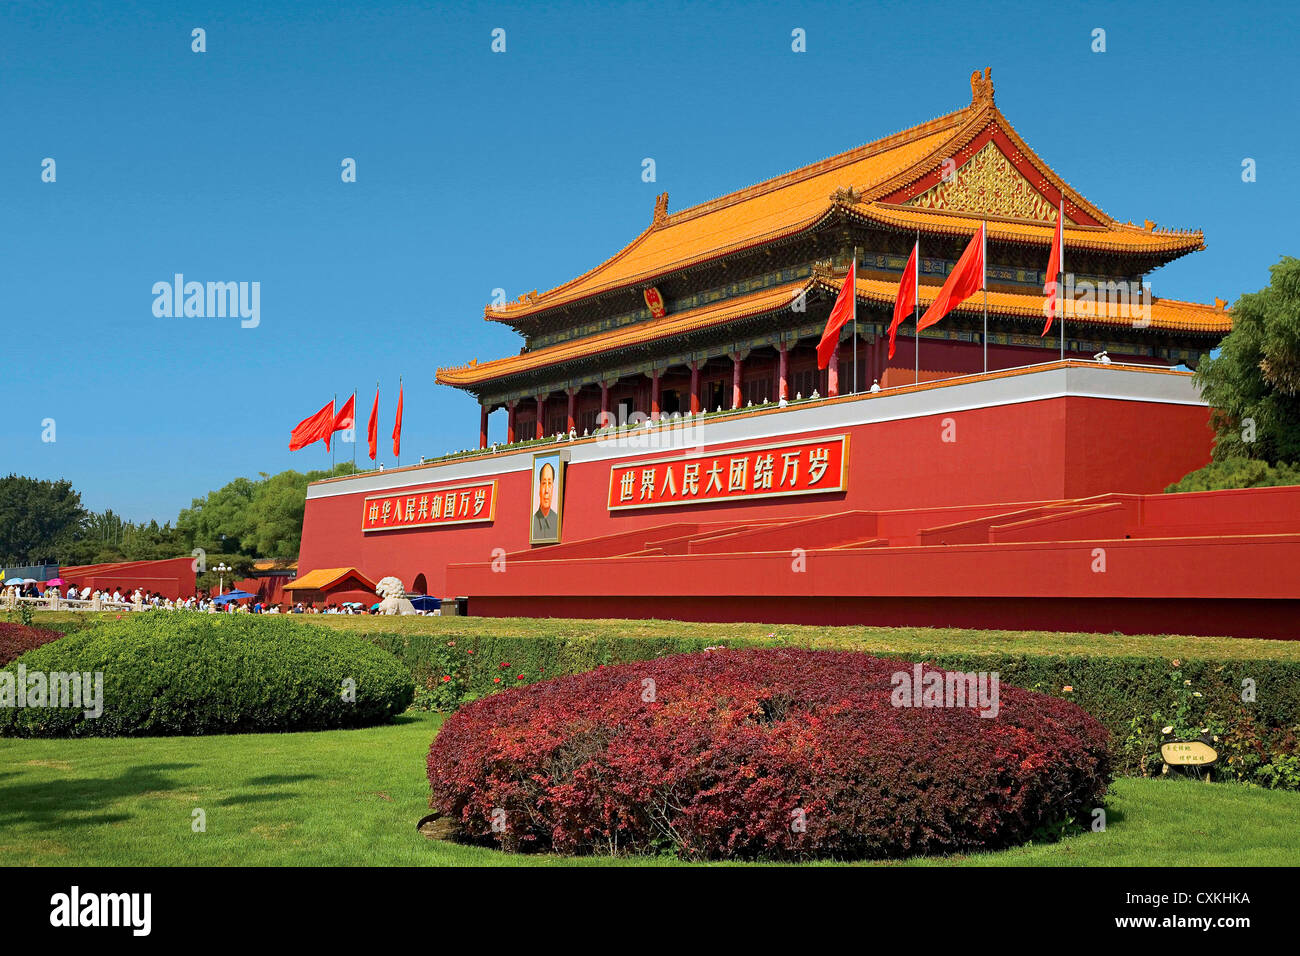 China, Beijing, The Forbidden City, Gate of Heavenly Peace gardens. Stock Photo